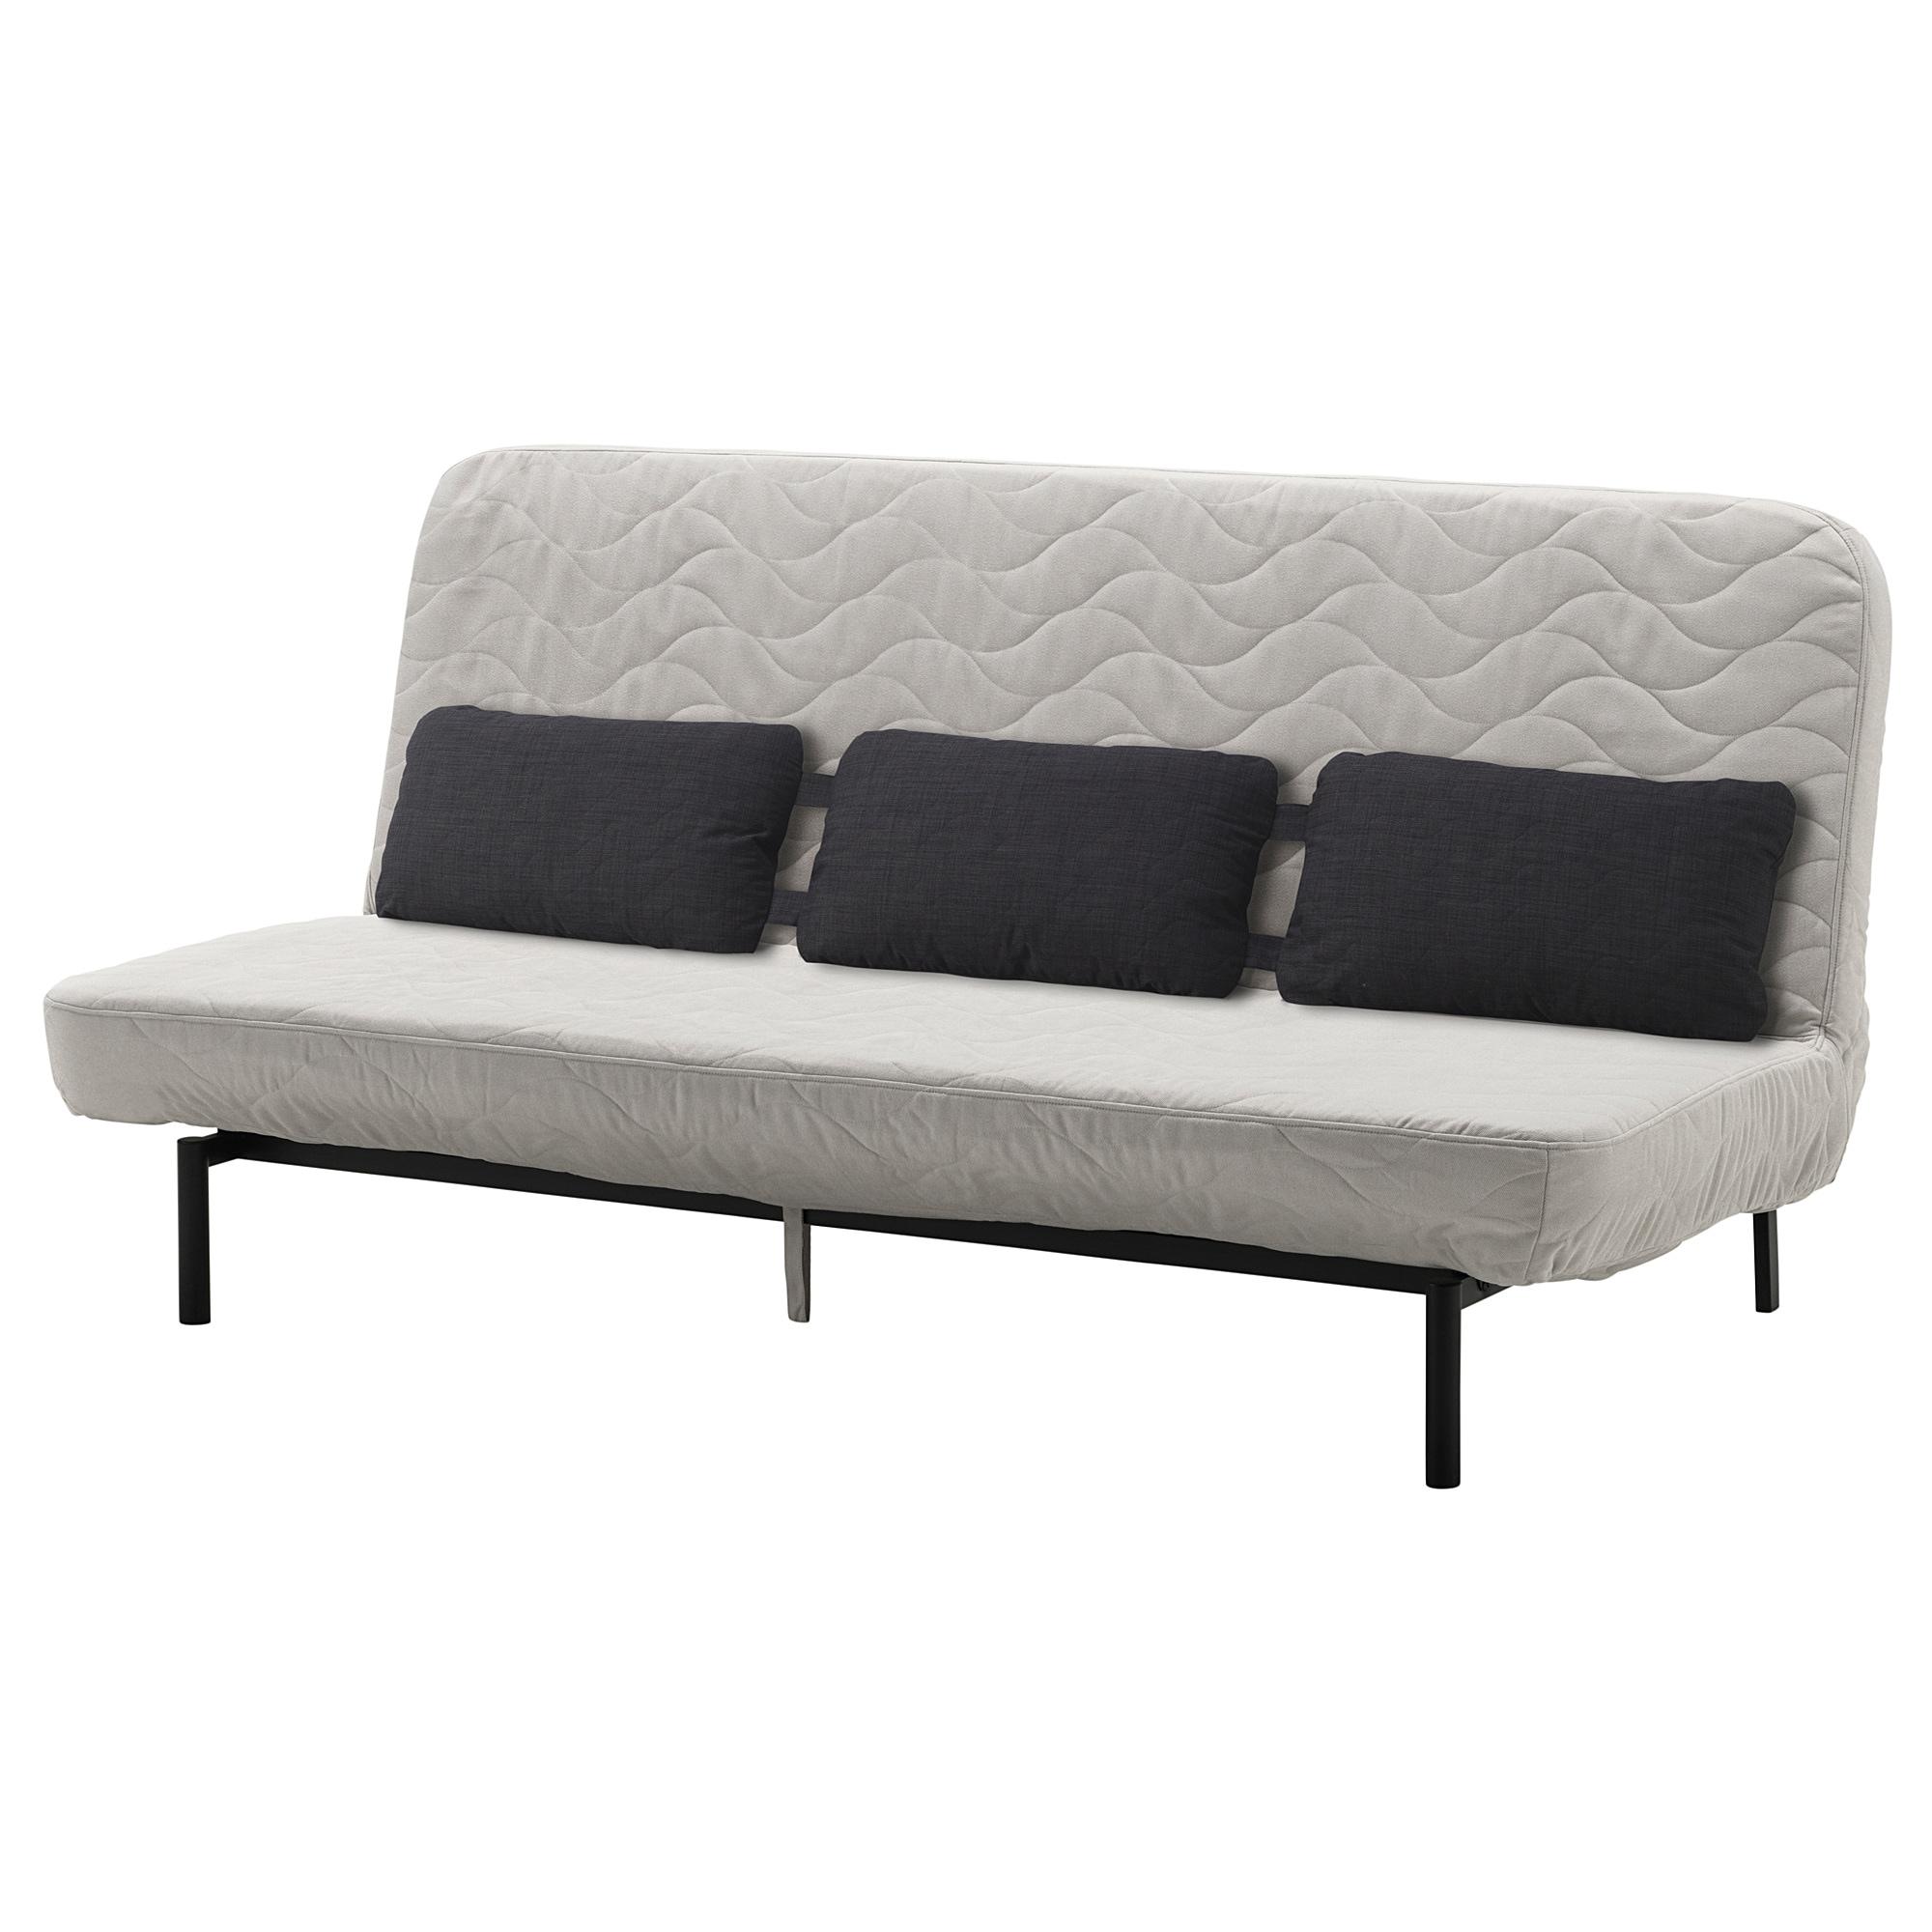 NYHAMN Sleeper Sofa With Triple Cushion, With Foam Mattress, Borred Light  Beige